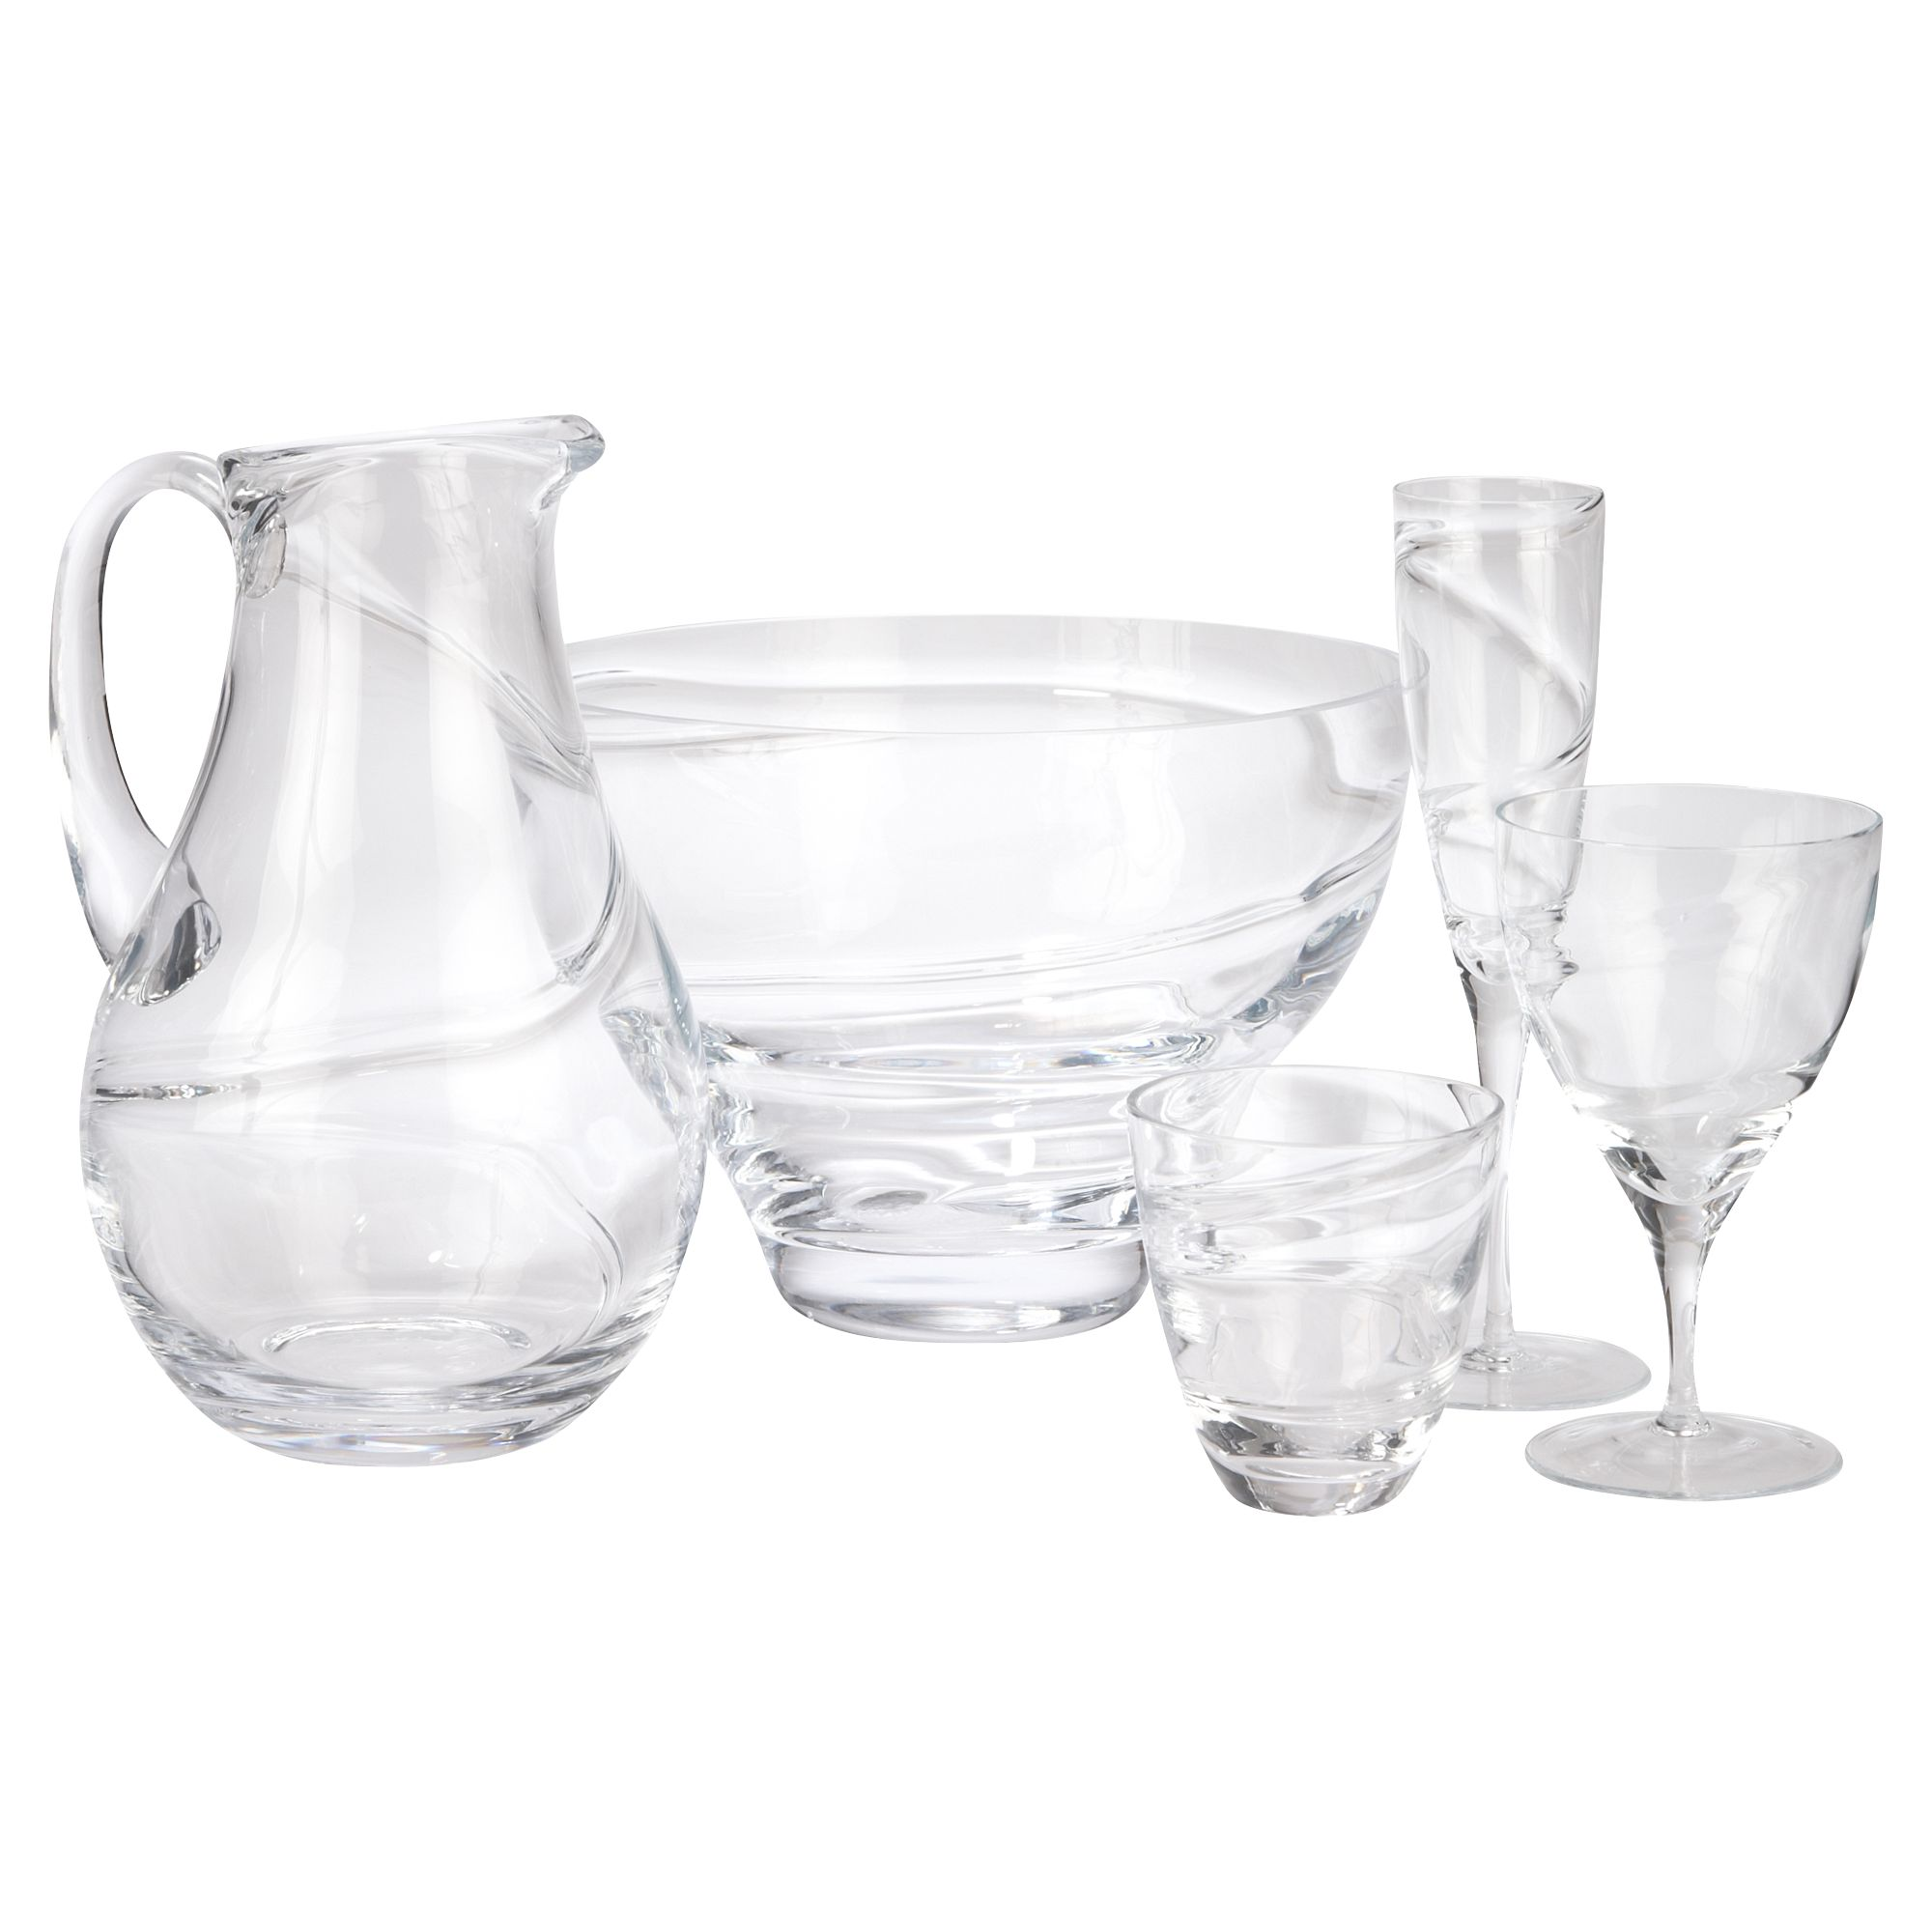 Malika glassware collection